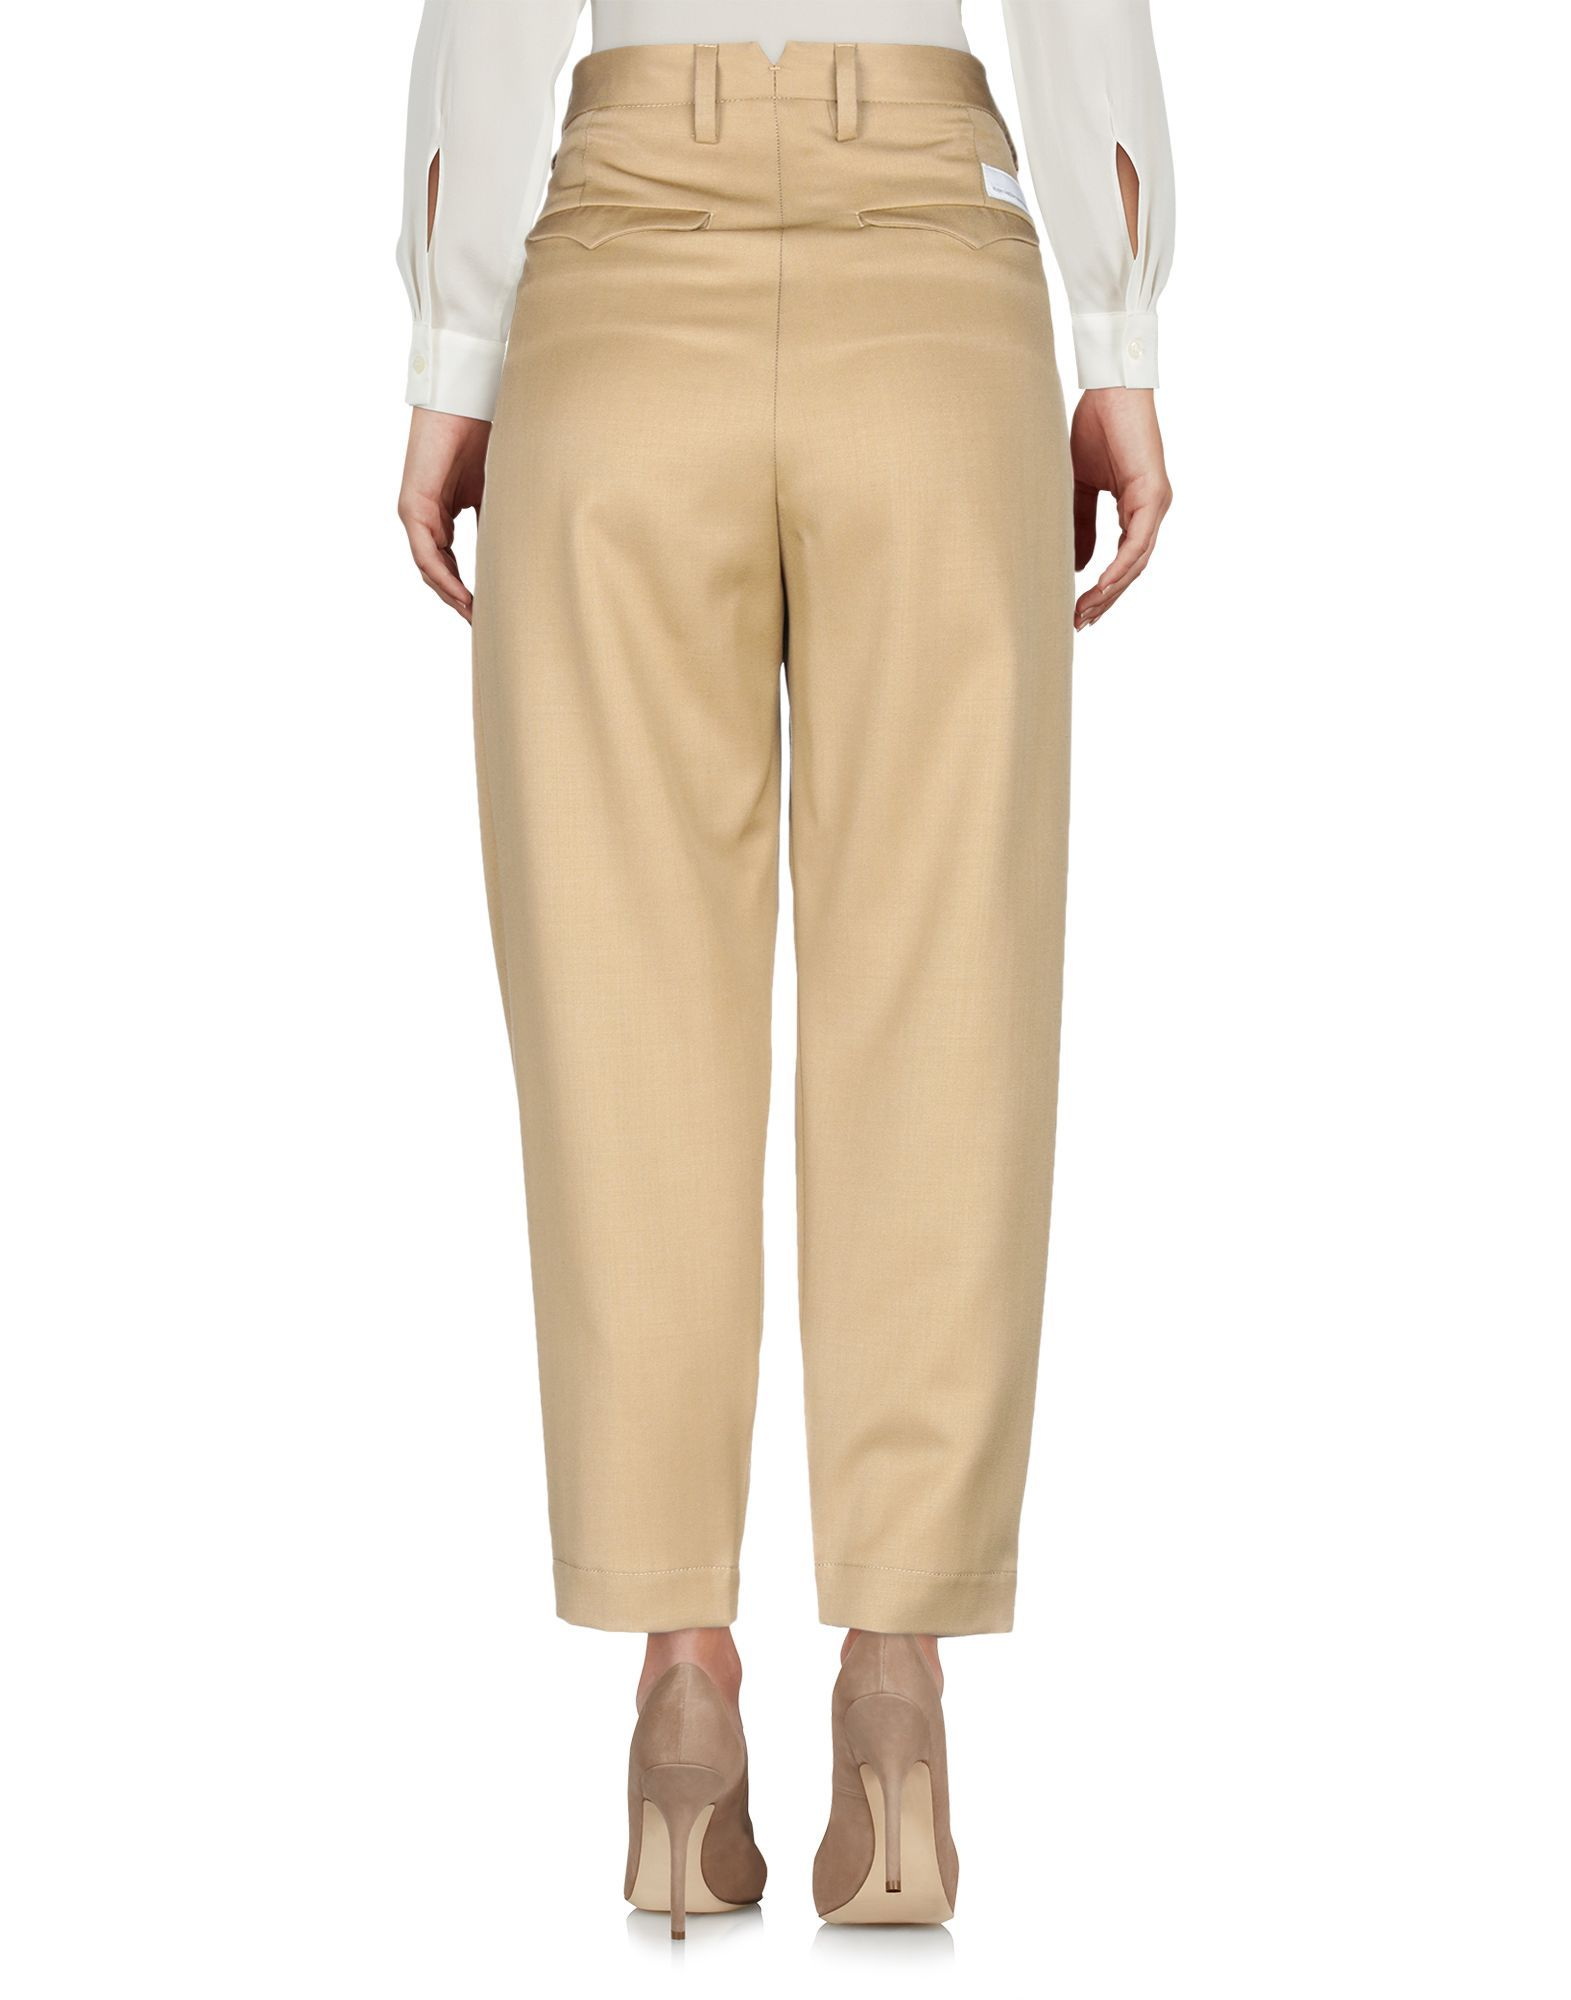 Nine:Inthe:Morning Camel Wool Trousers